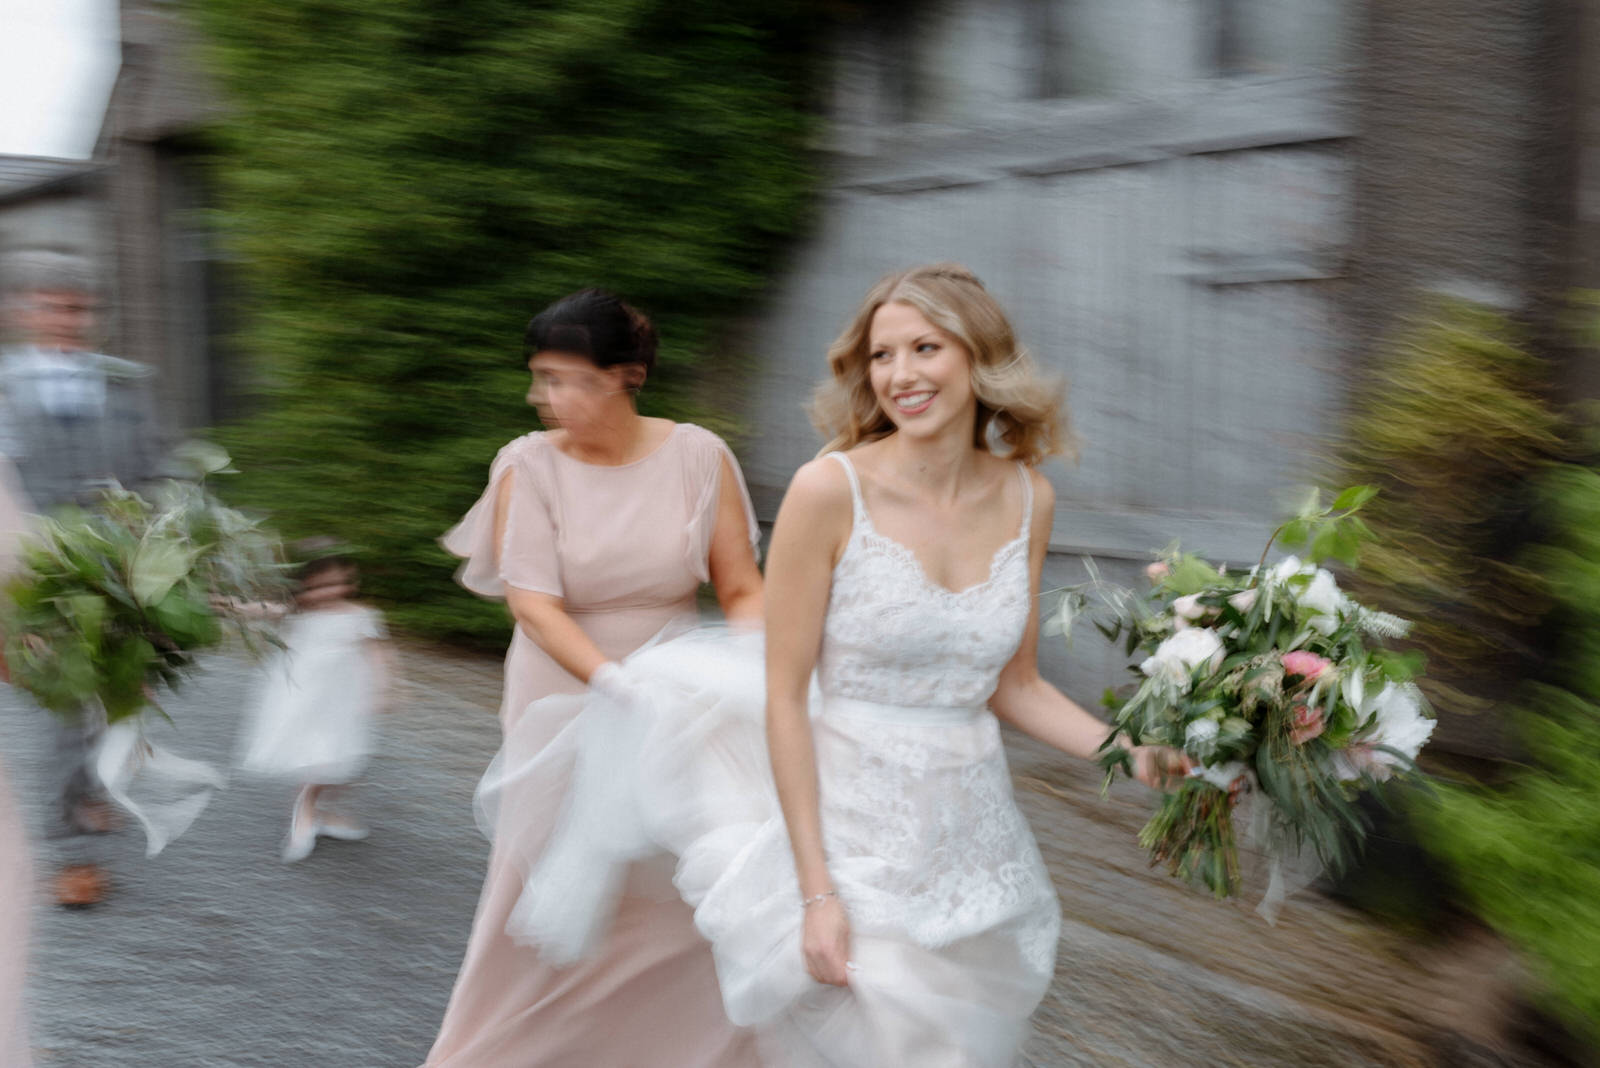 bride running on the way to ceremony lime park wedding photographer bohemian bride wedding